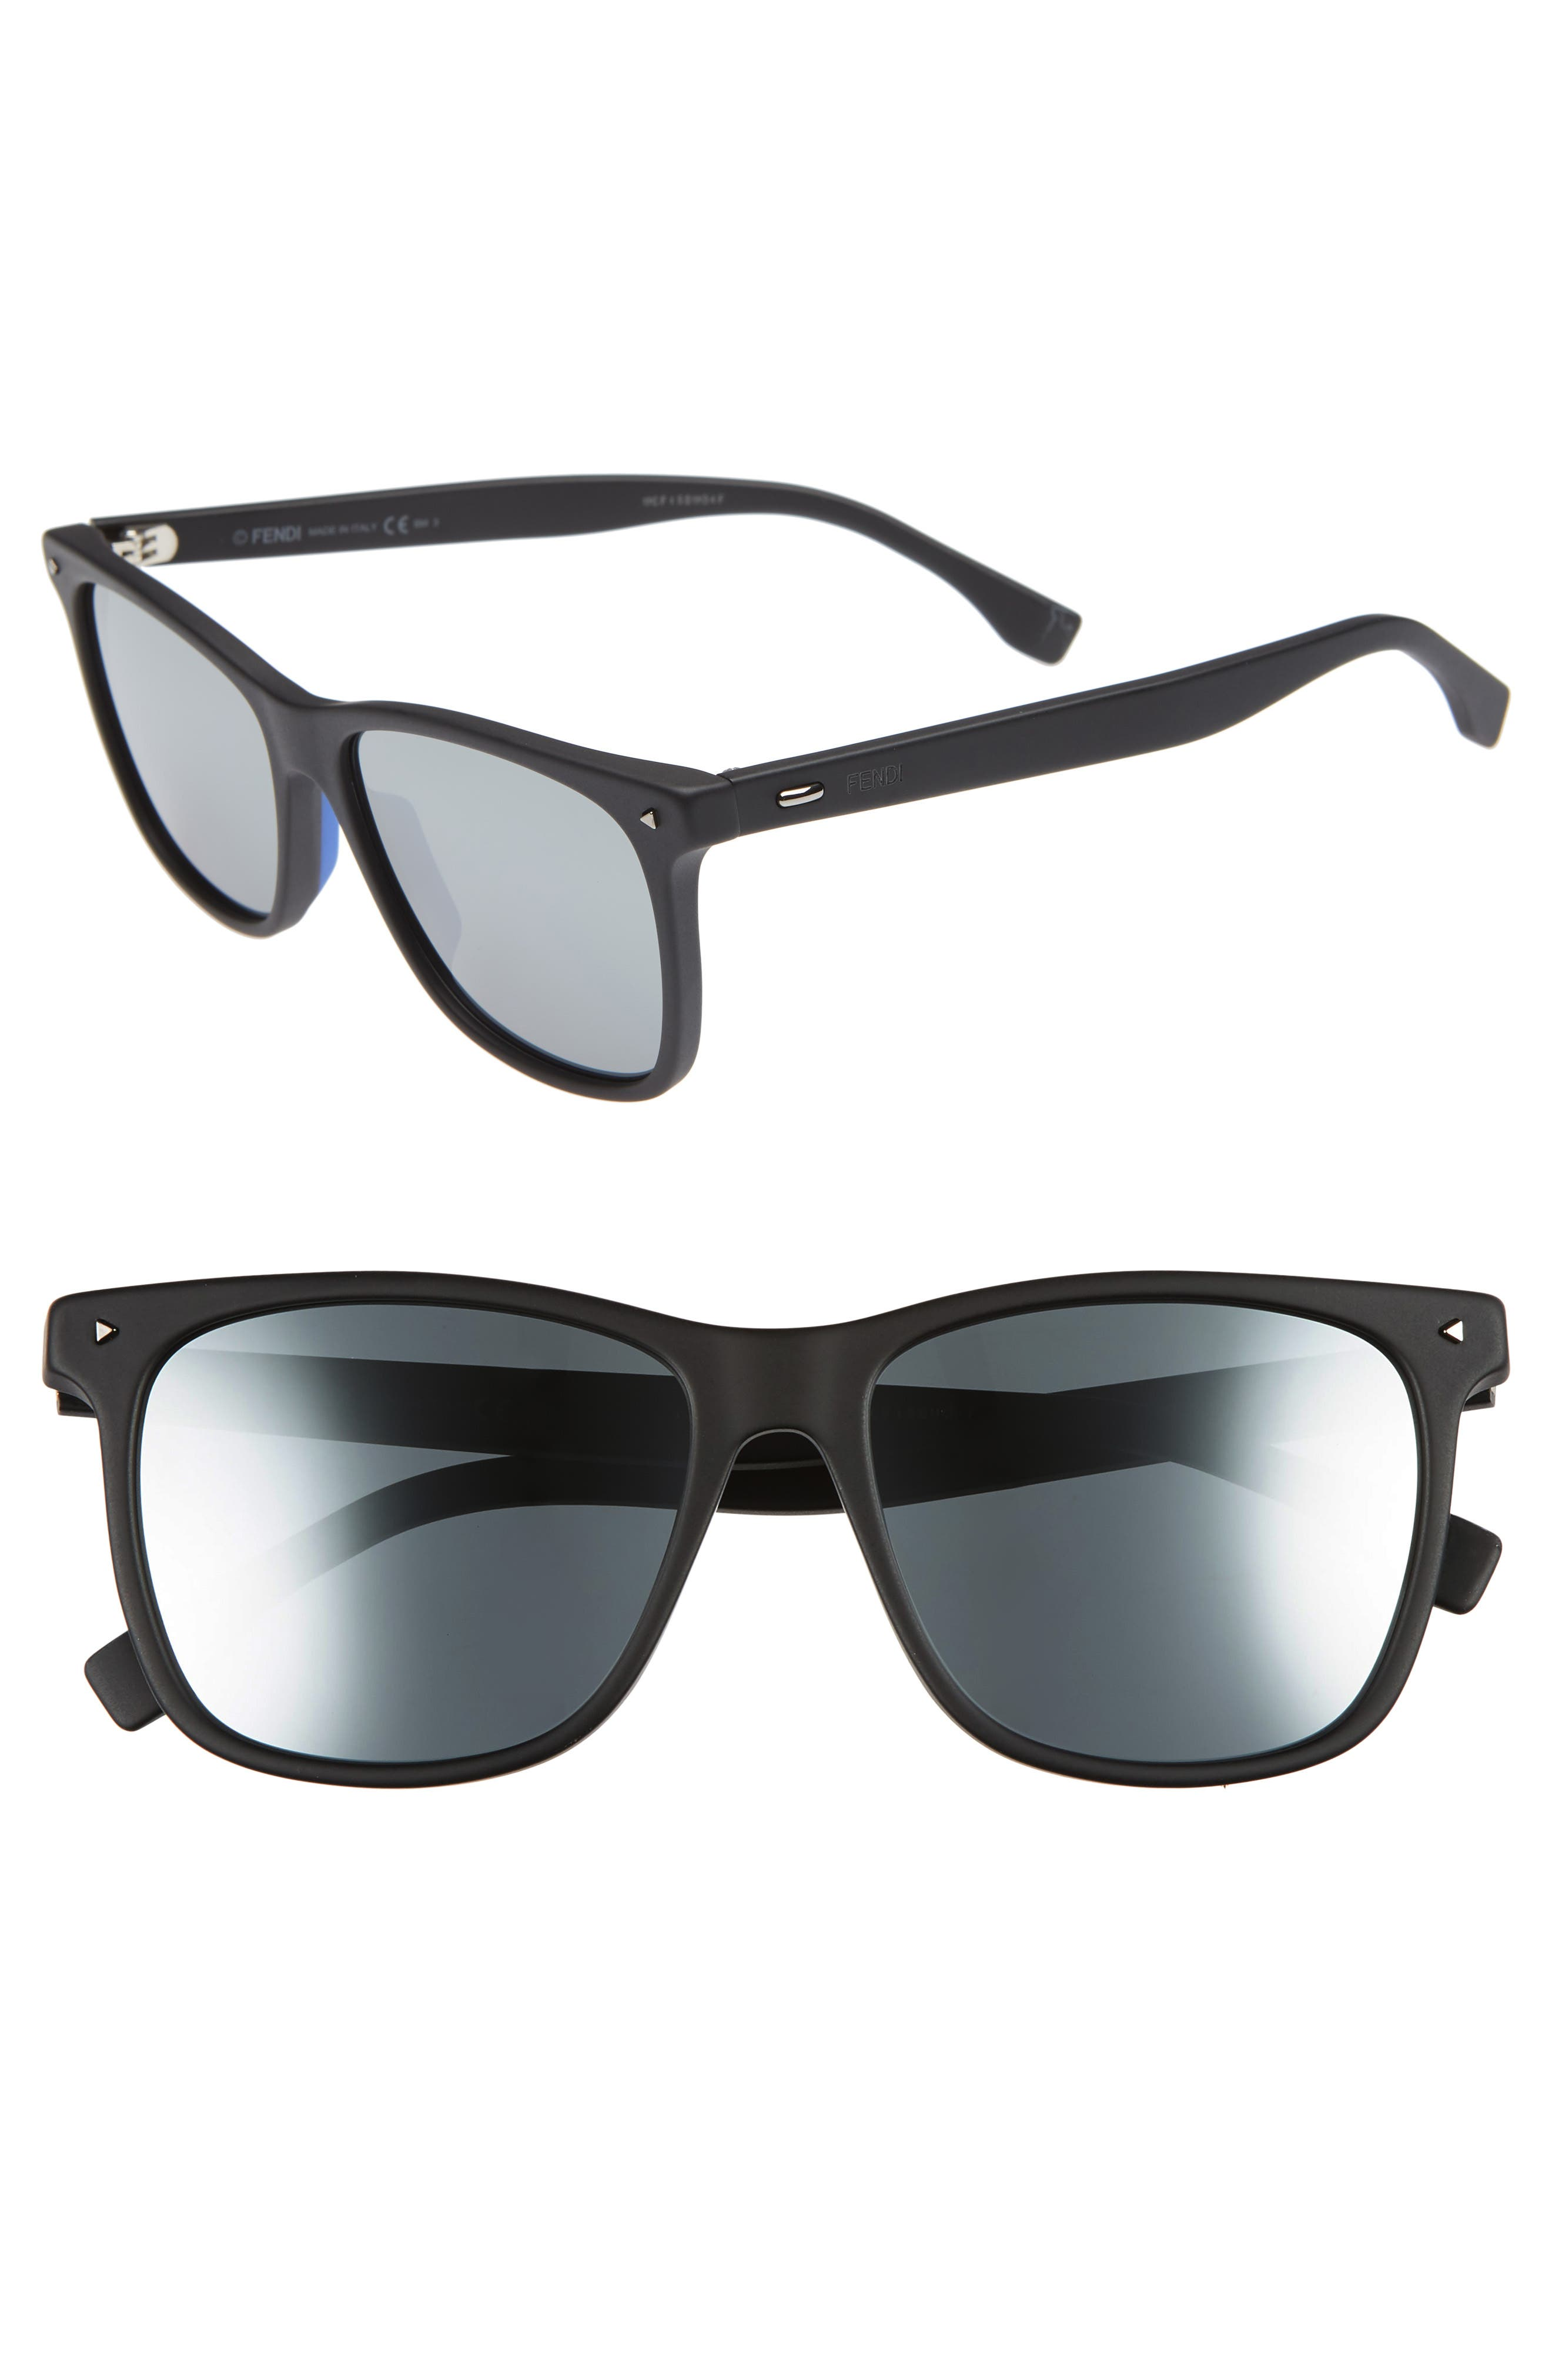 55mm Polarized Sunglasses,                             Main thumbnail 1, color,                             MATTE BLACK